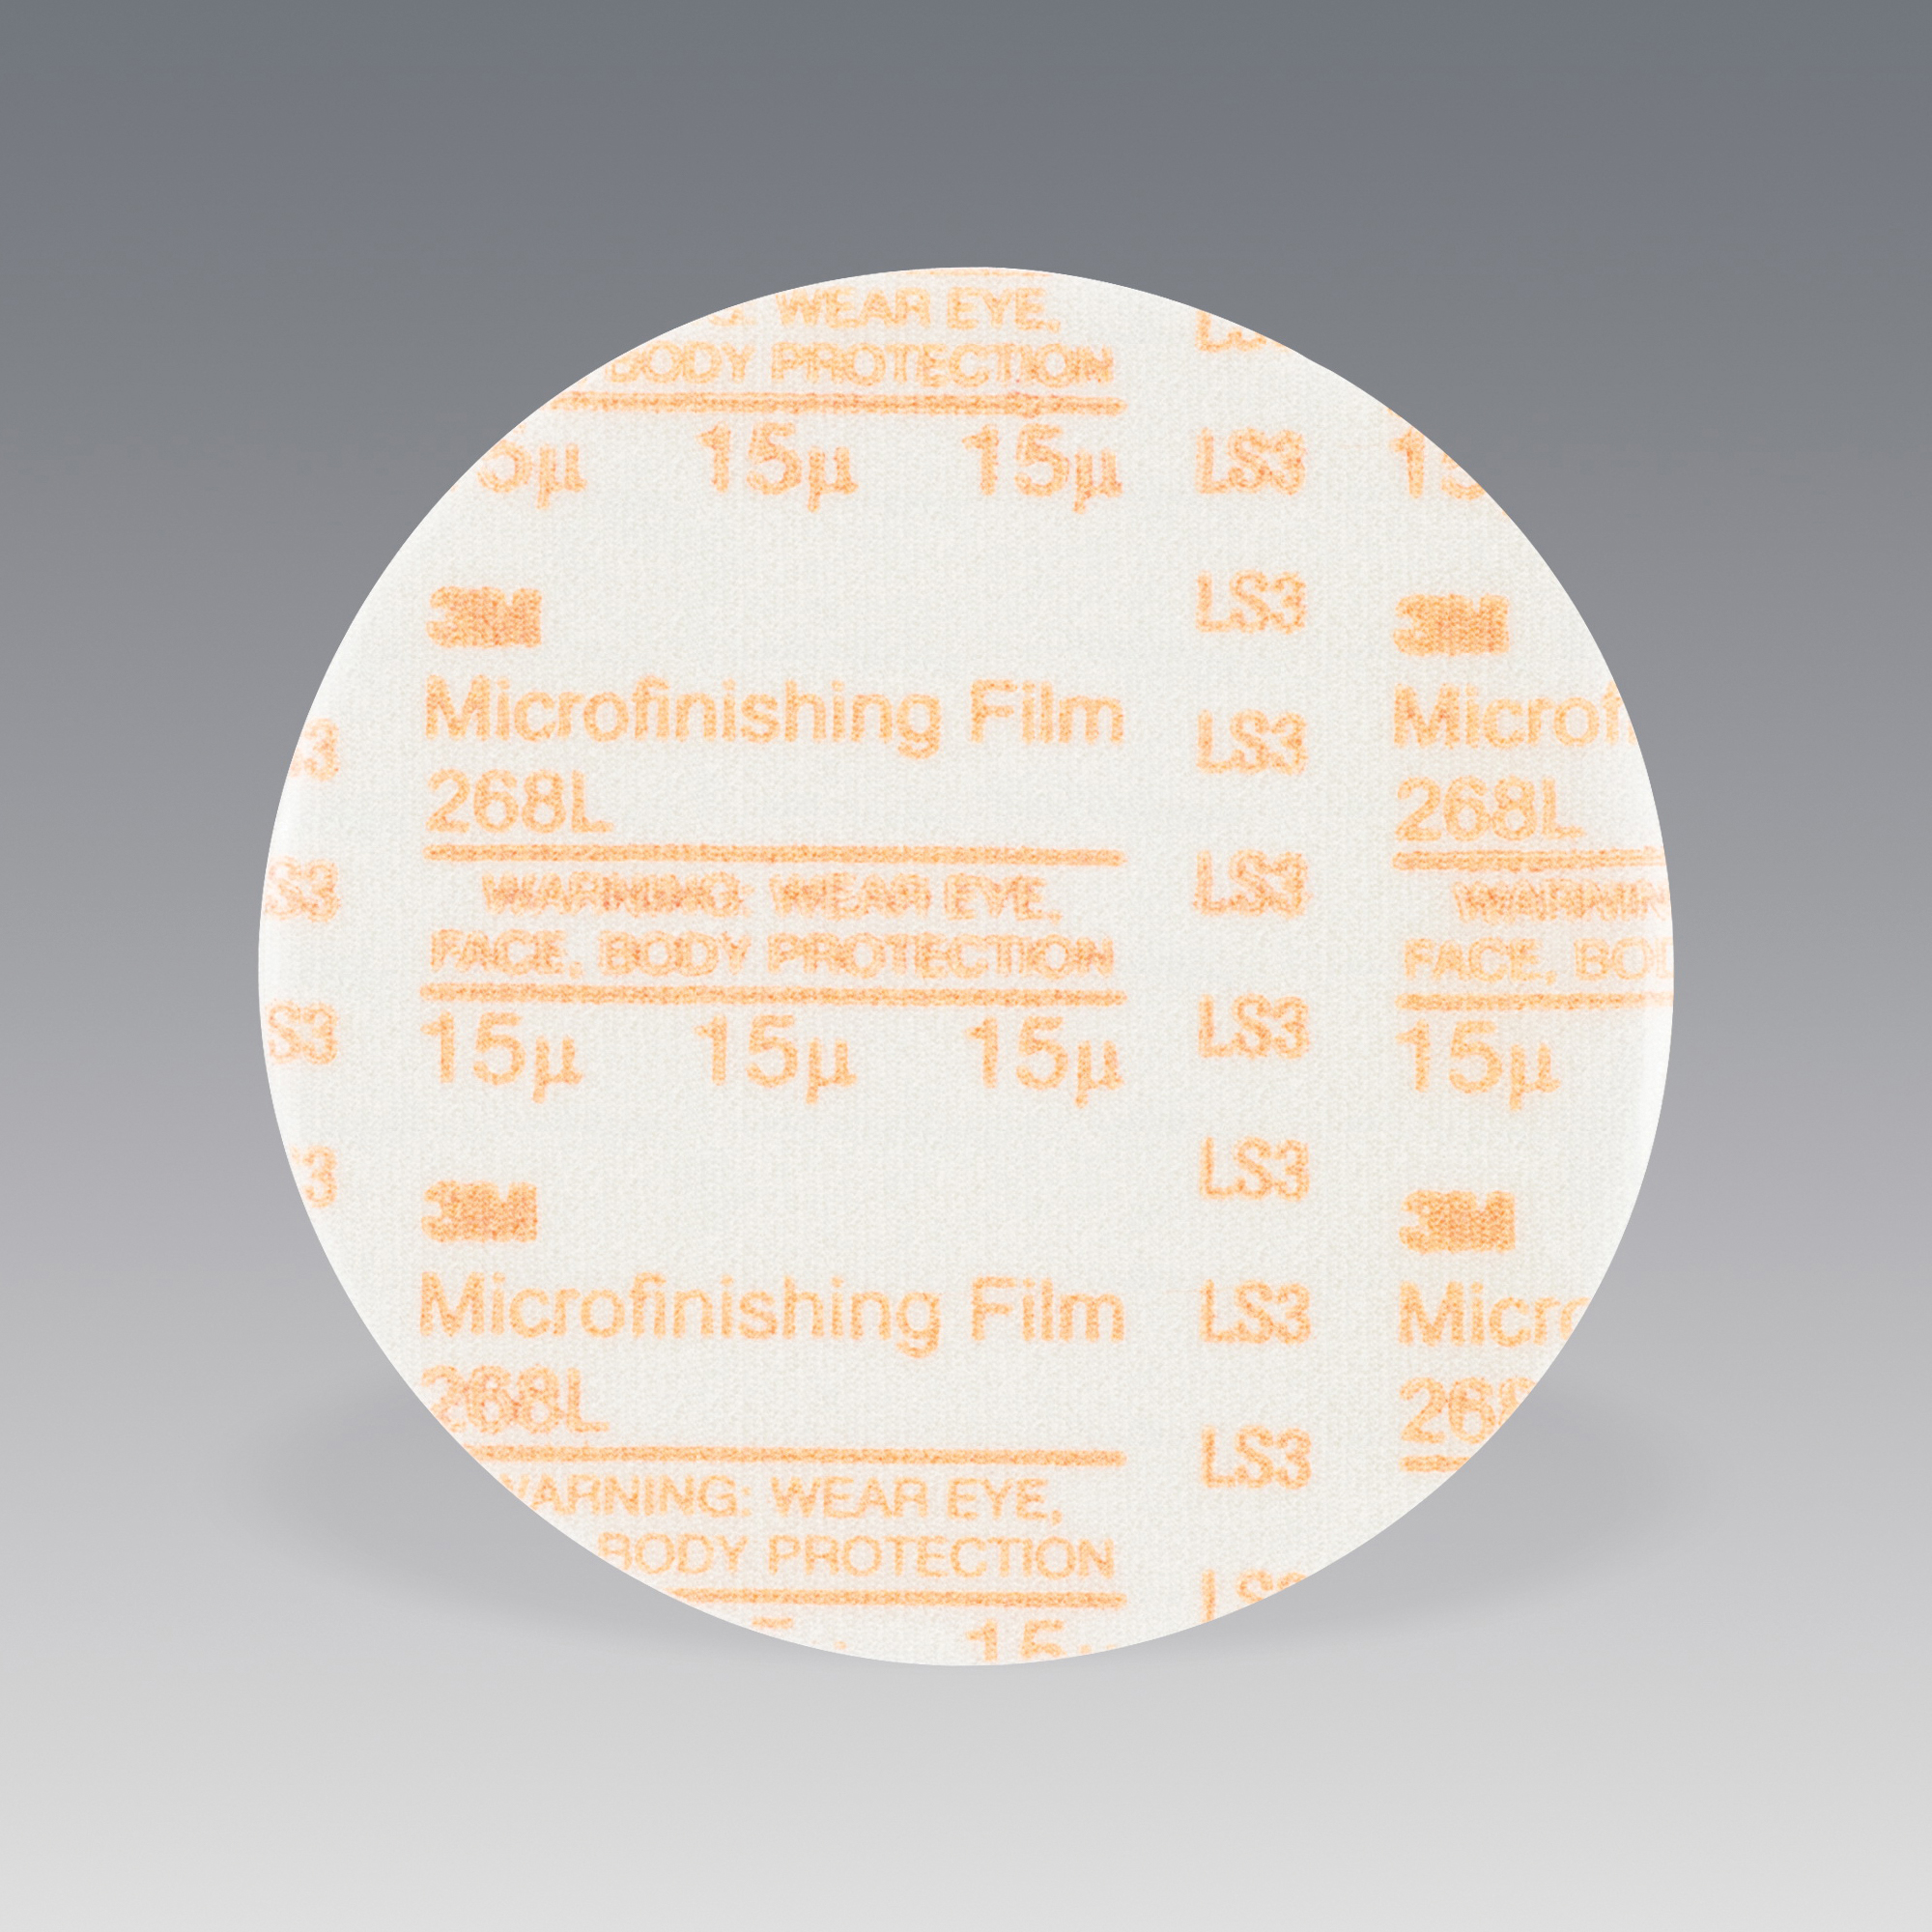 3M™ 051111-54510 Type D Microfinishing PSA Coated Abrasive Disc, 3 in Dia, 15 micron Grit, Super Fine Grade, Aluminum Oxide Abrasive, Polyester Film Backing